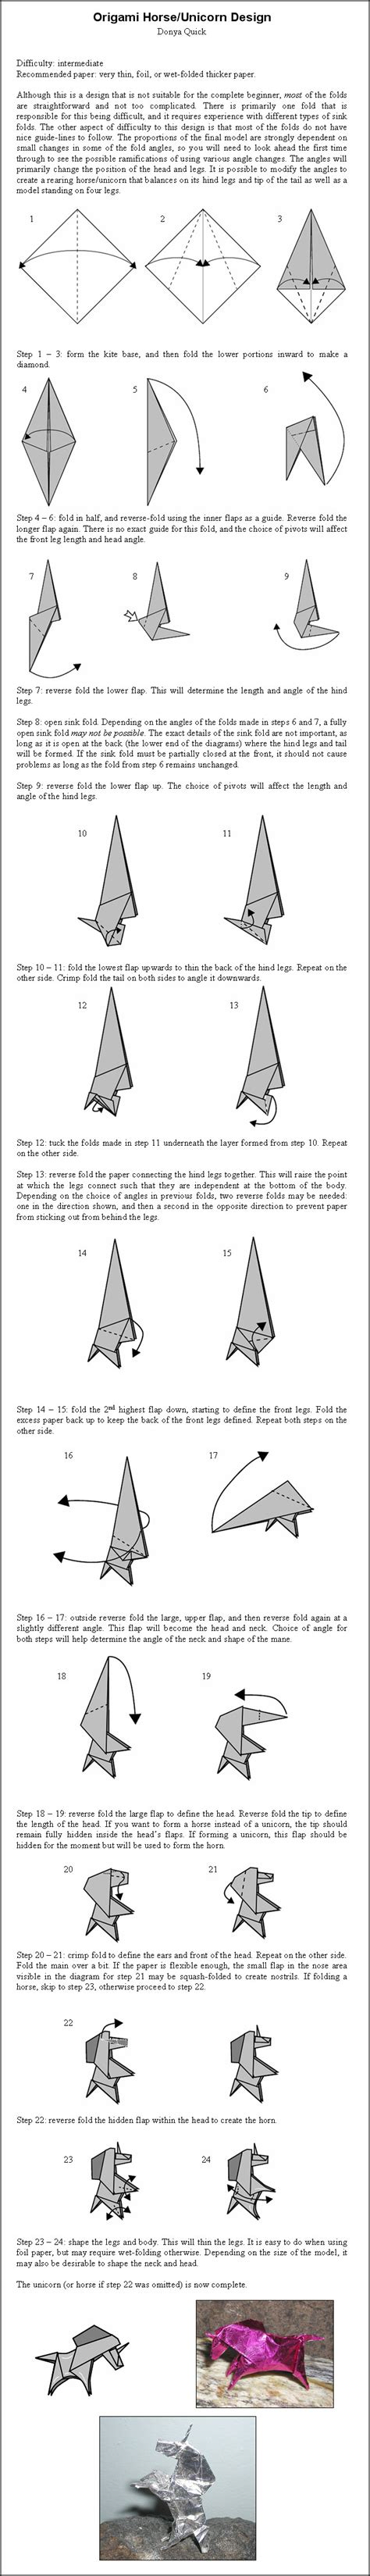 How To Make A Paper Unicorn - a duchess nonethelesss unicorn origami